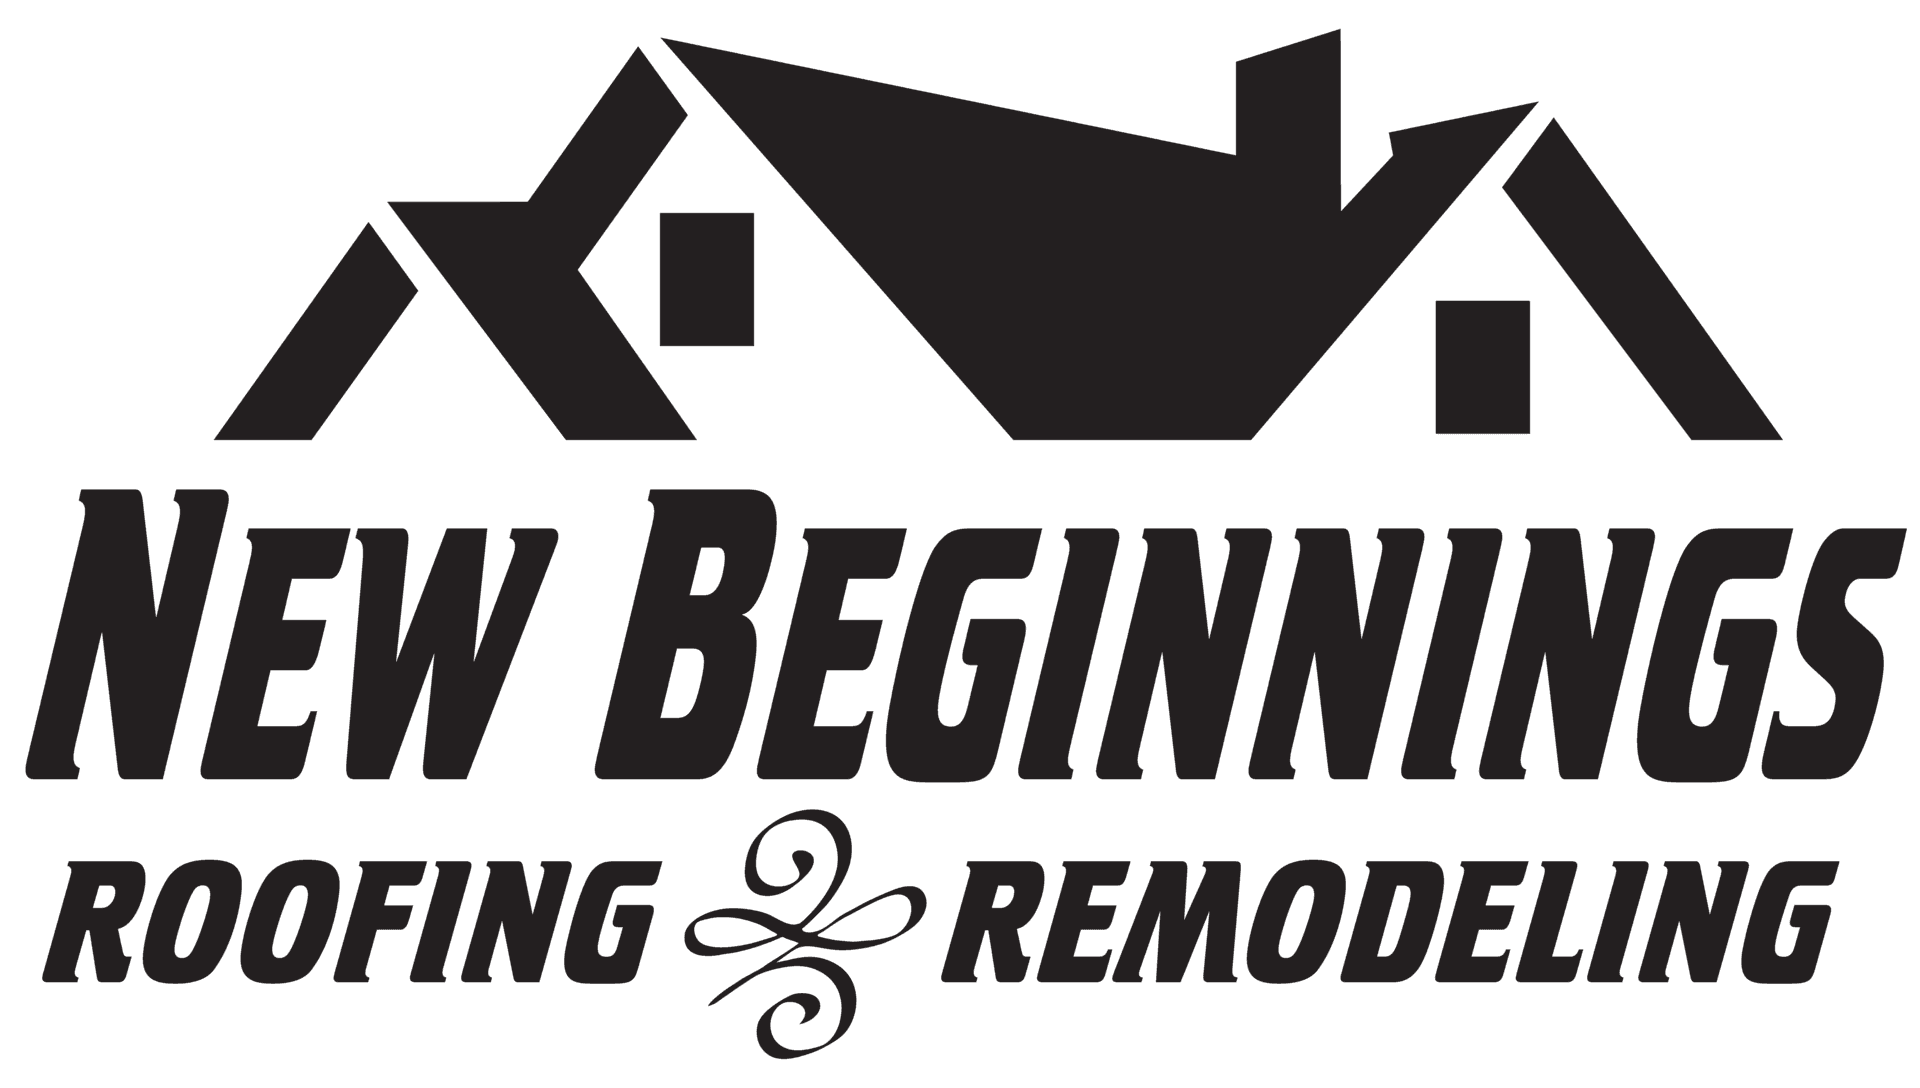 New Beginnings Roofing And Remodeling LLC   Logo